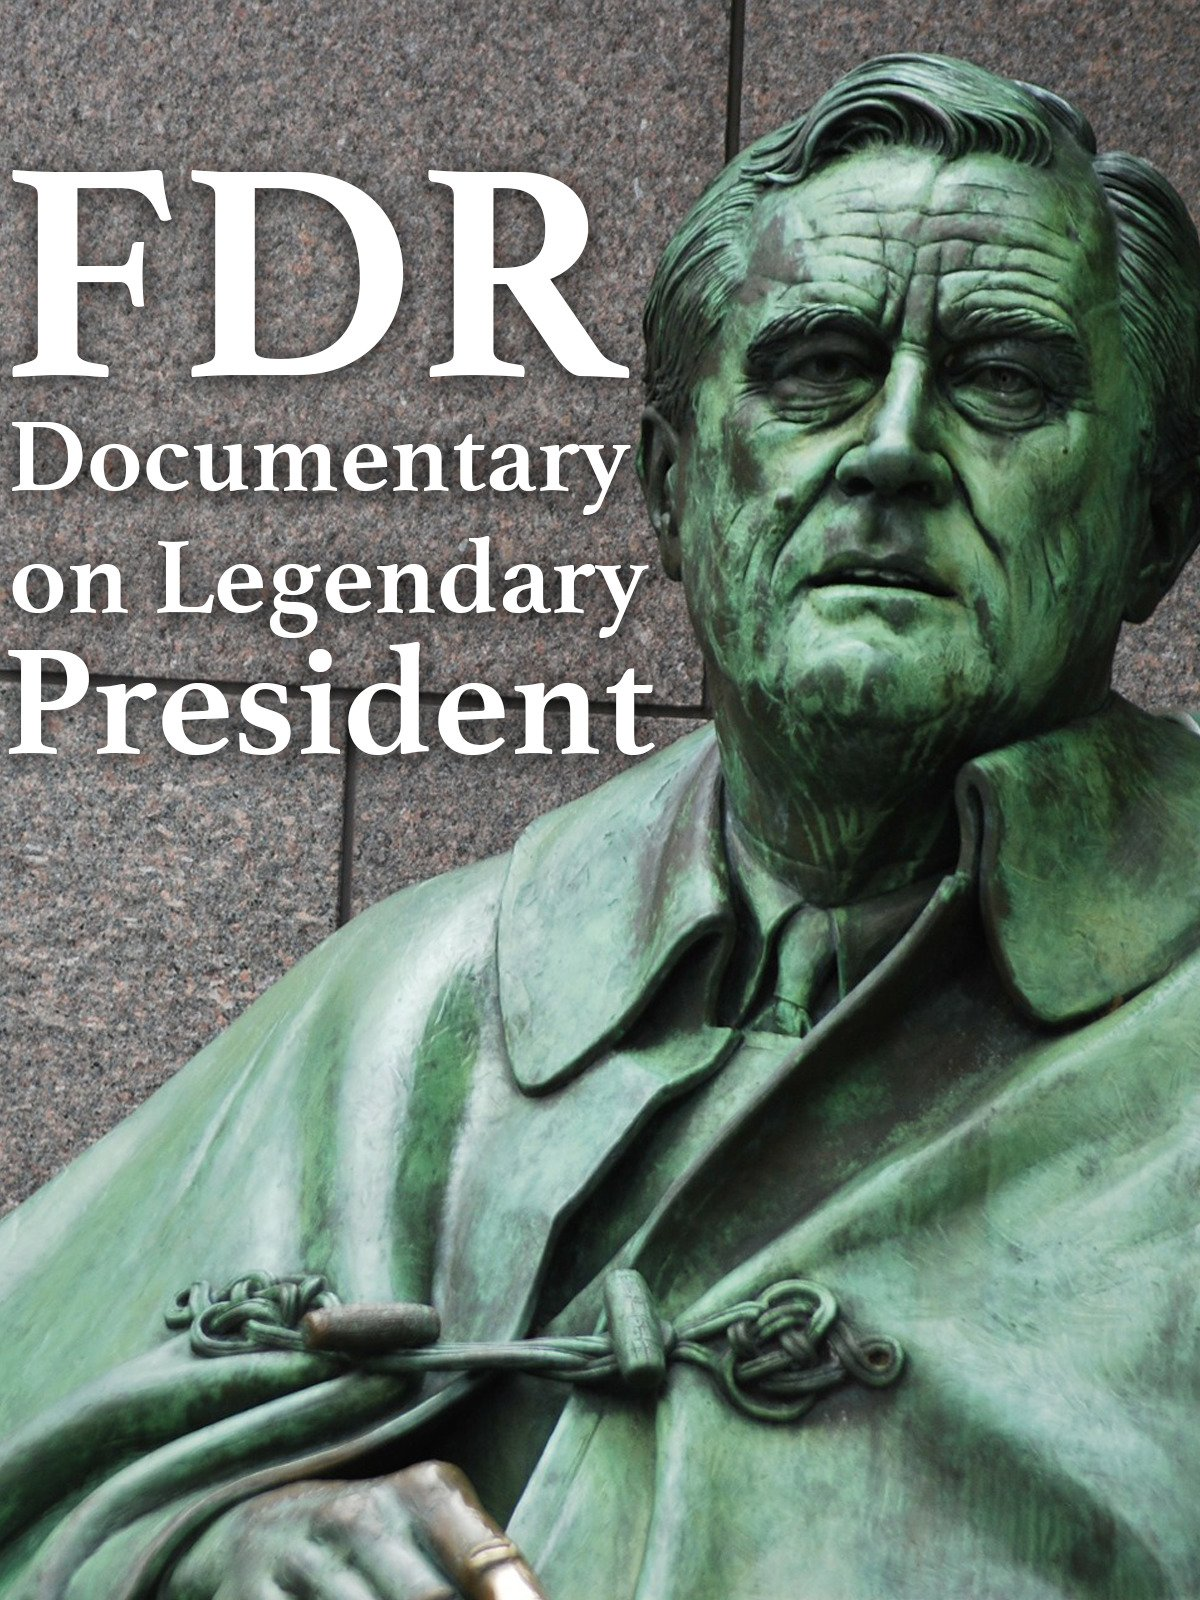 FDR Documentary on Legendary President